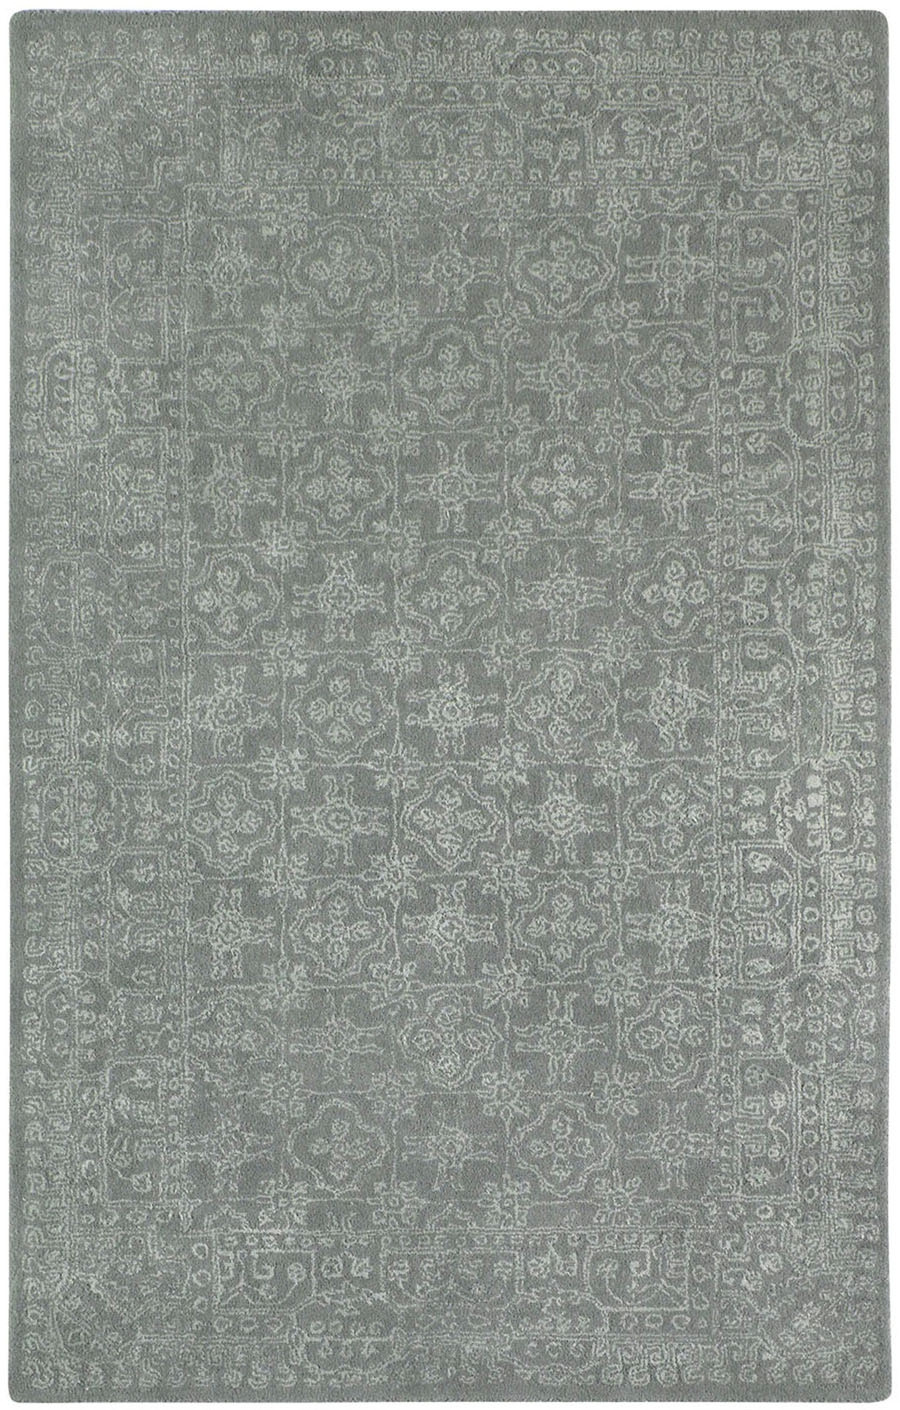 Capel Interlace 9243 300 Smoky Rug